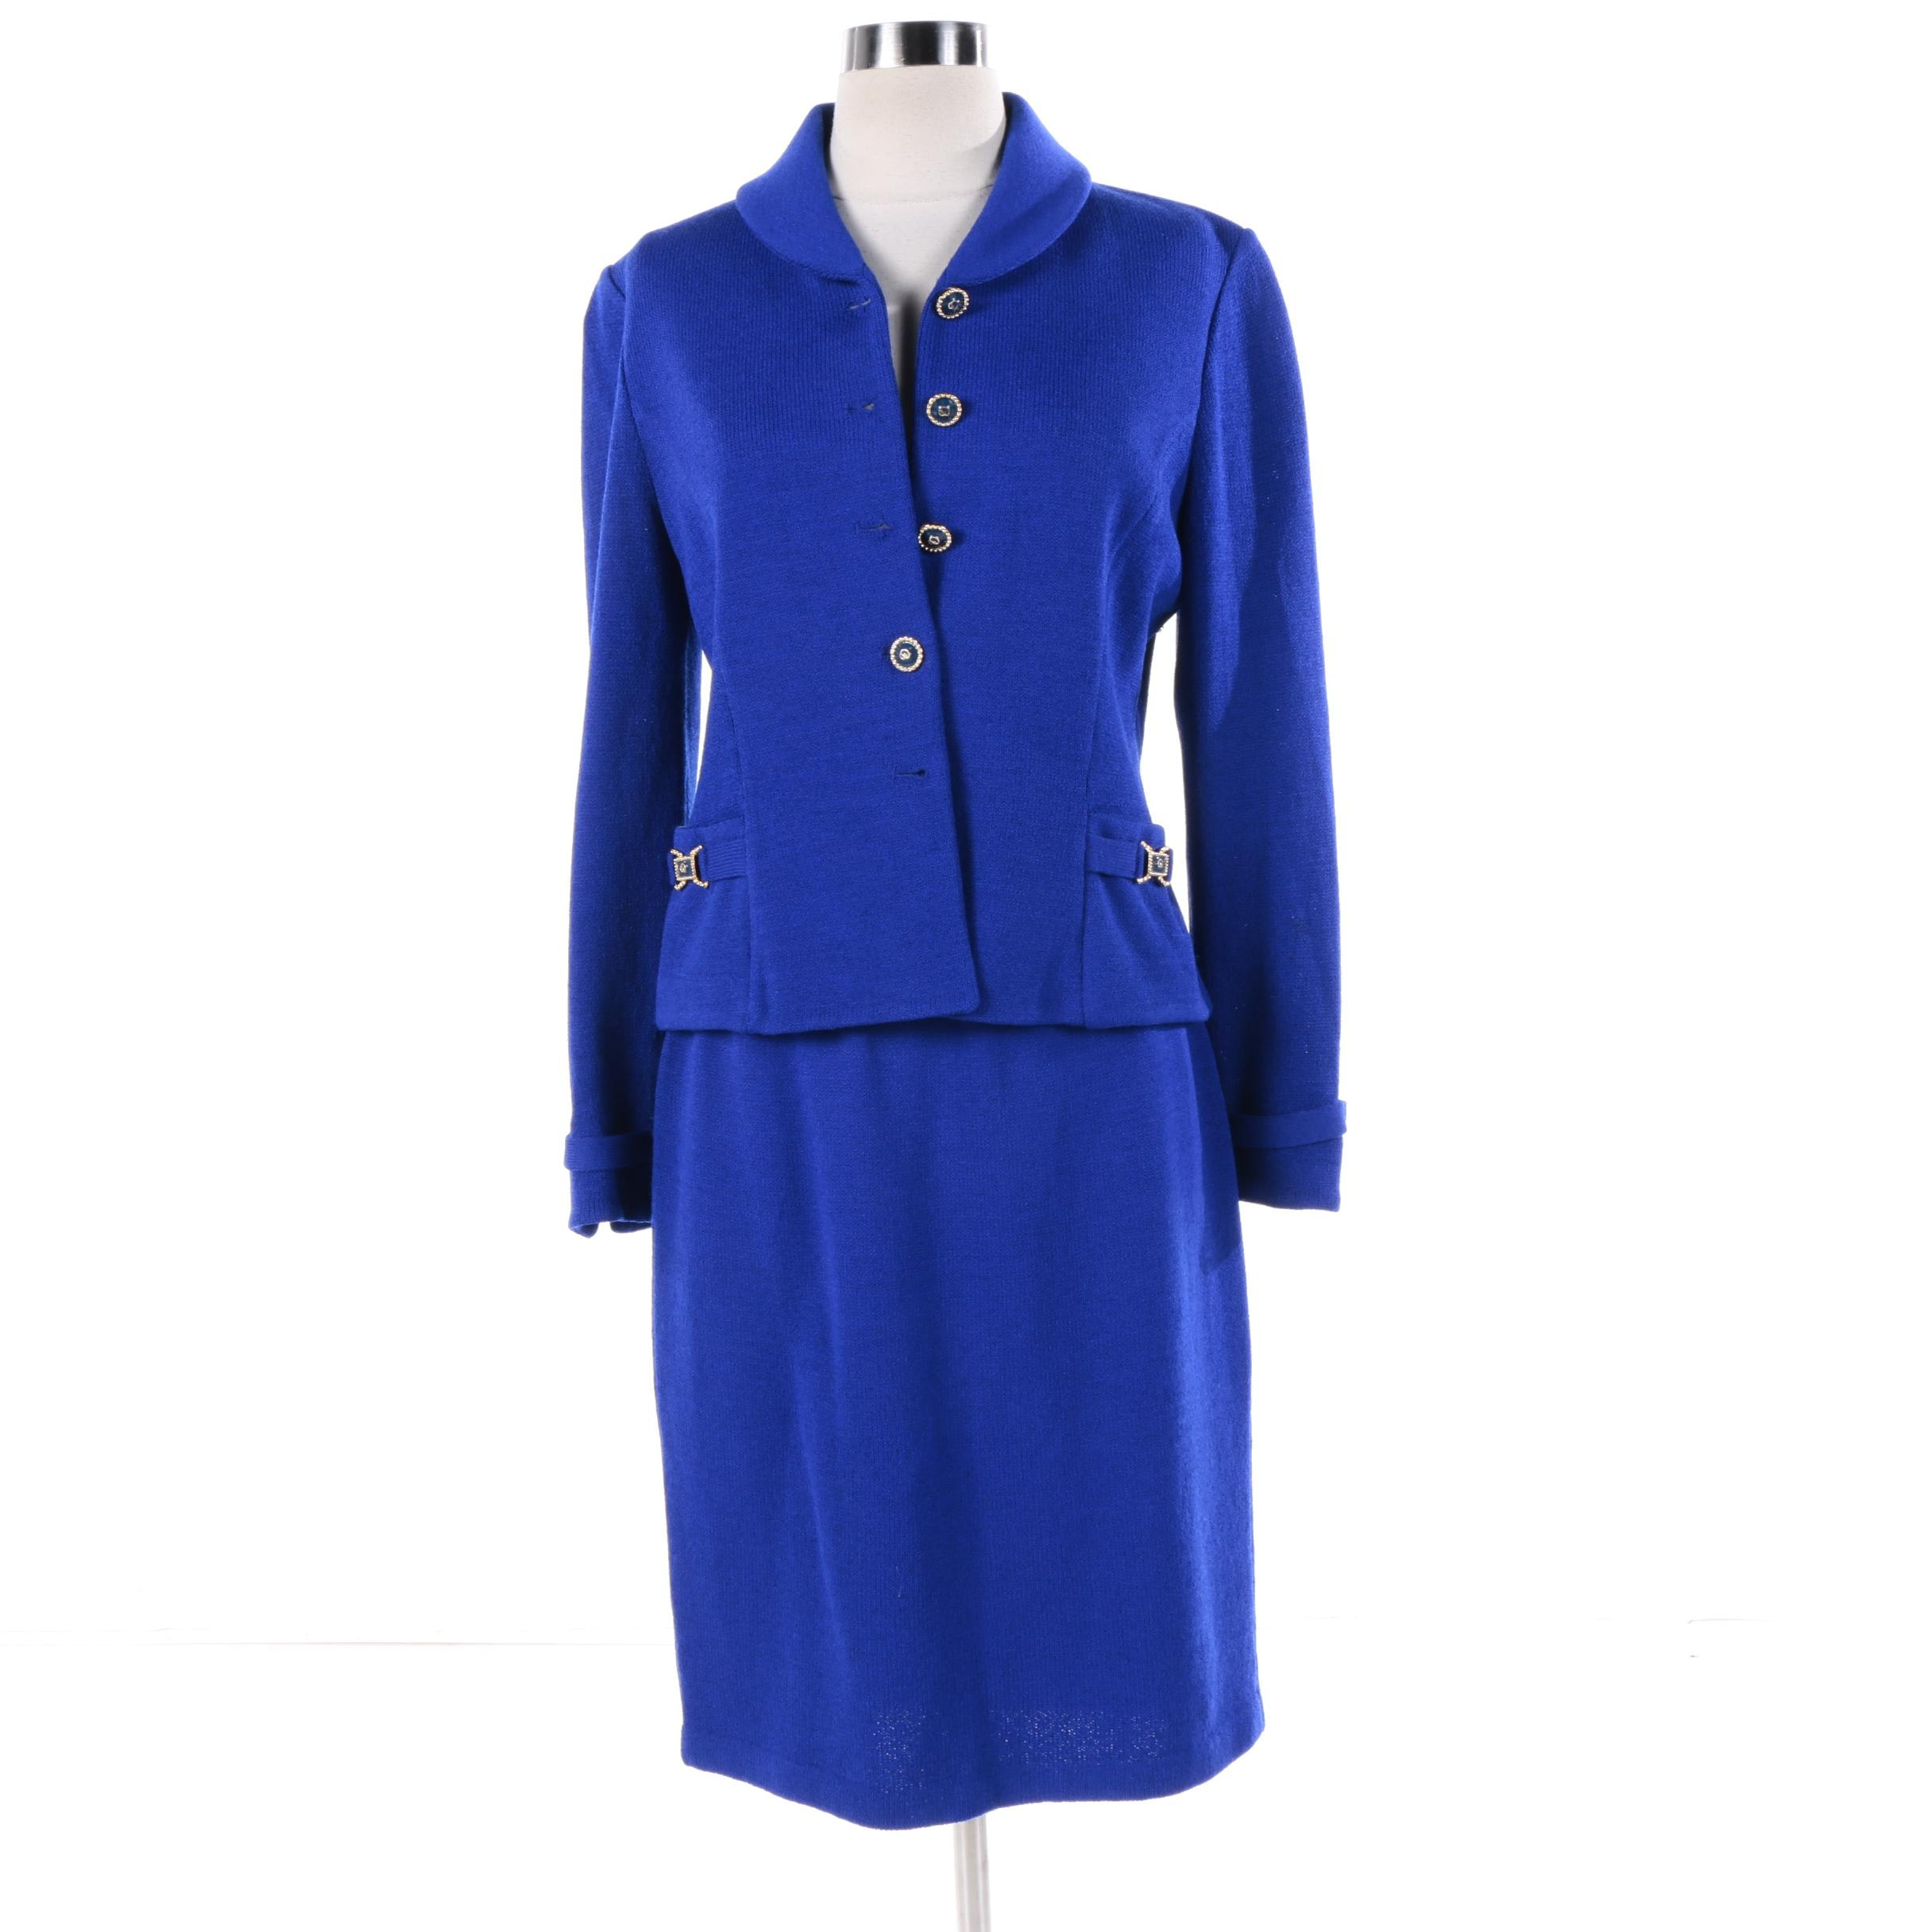 St. John Collection Blue Knit Suit with Shawl Collar and Enameled Buttons